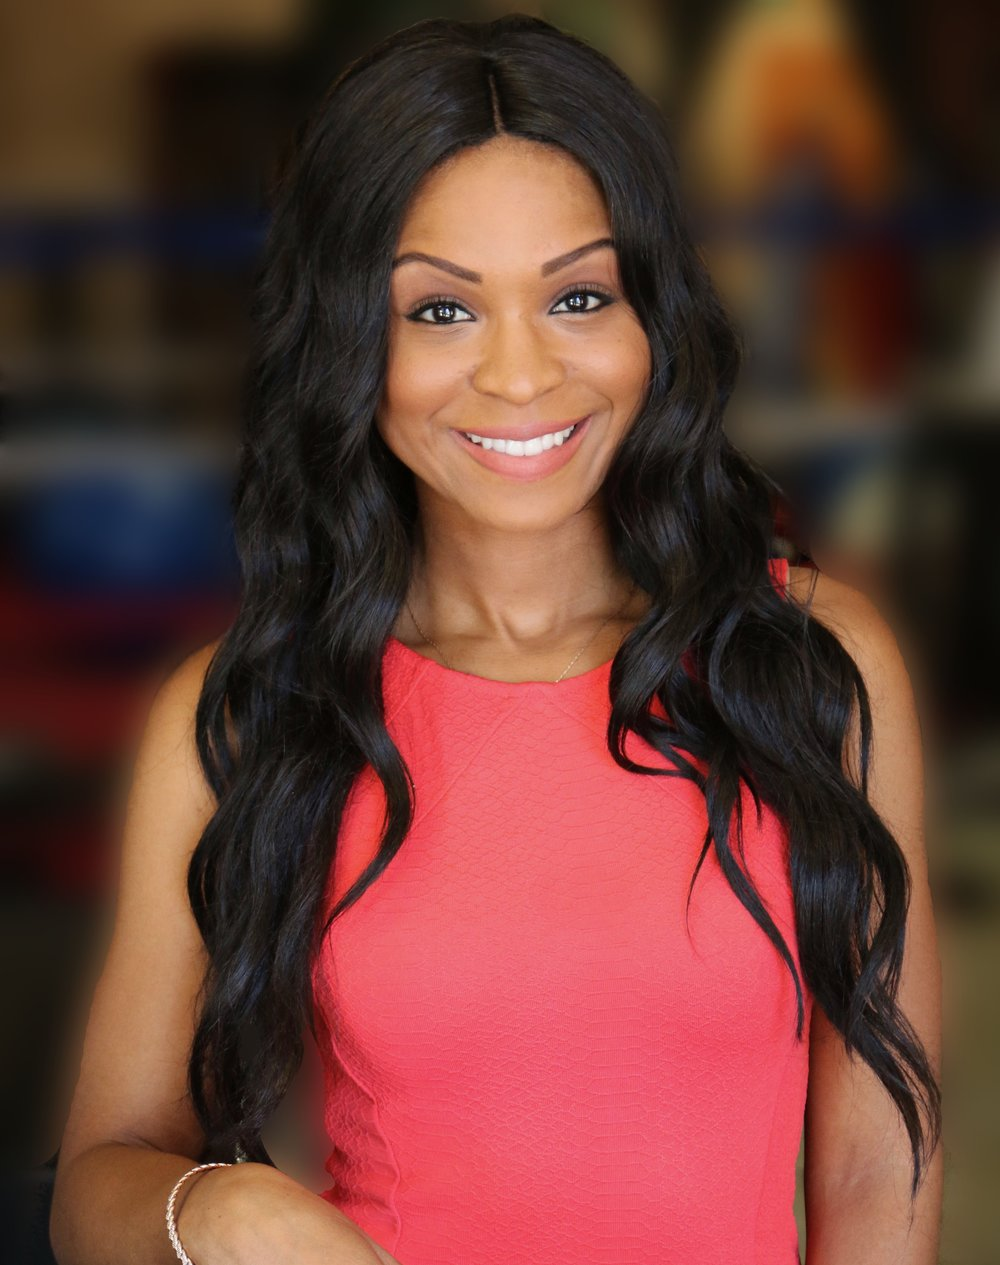 "Melanie Eke is a TV/Radio Personality and Personal Development Influencer from Los Angeles, CA.  Melanie Has Hosted local TV, digital radio, and numerous live events around Los Angeles.  Currently, Melanie is a Media Personality for Rich Girl Network in addition to producing her own content.  She's also a Co-Host on KLBP 99.1 FM's Hollywood Show Live- On the Air radio show in Long Beach, CA, which is also televised via syndication.  In 2017, Melanie participated in Oxygen's competition reality series ""The Battle of the Ex-Besties,"" where she embarked on a one-of-a-kind competition experience testing her physically, mentally, and emotionally! This experience inspired Melanie to found My Friendship Values, a nonprofit that empowers young ladies to develop and maintain healthy friendships.  Beyond her work with young ladies, Melanie strives to empower all young adults to develop and maintain not only healthy friendships, but healthy relationships of all types.  Melanie also launched the empowerment brand People U Should Know, which highlights people positively impacting their industries and communities.  Her ultimate vision is to empower countless individuals to become their best selves and achieve fulfillment in everything they do!   Contact her at: FB, Twitter, IG- @MelanieCEke"